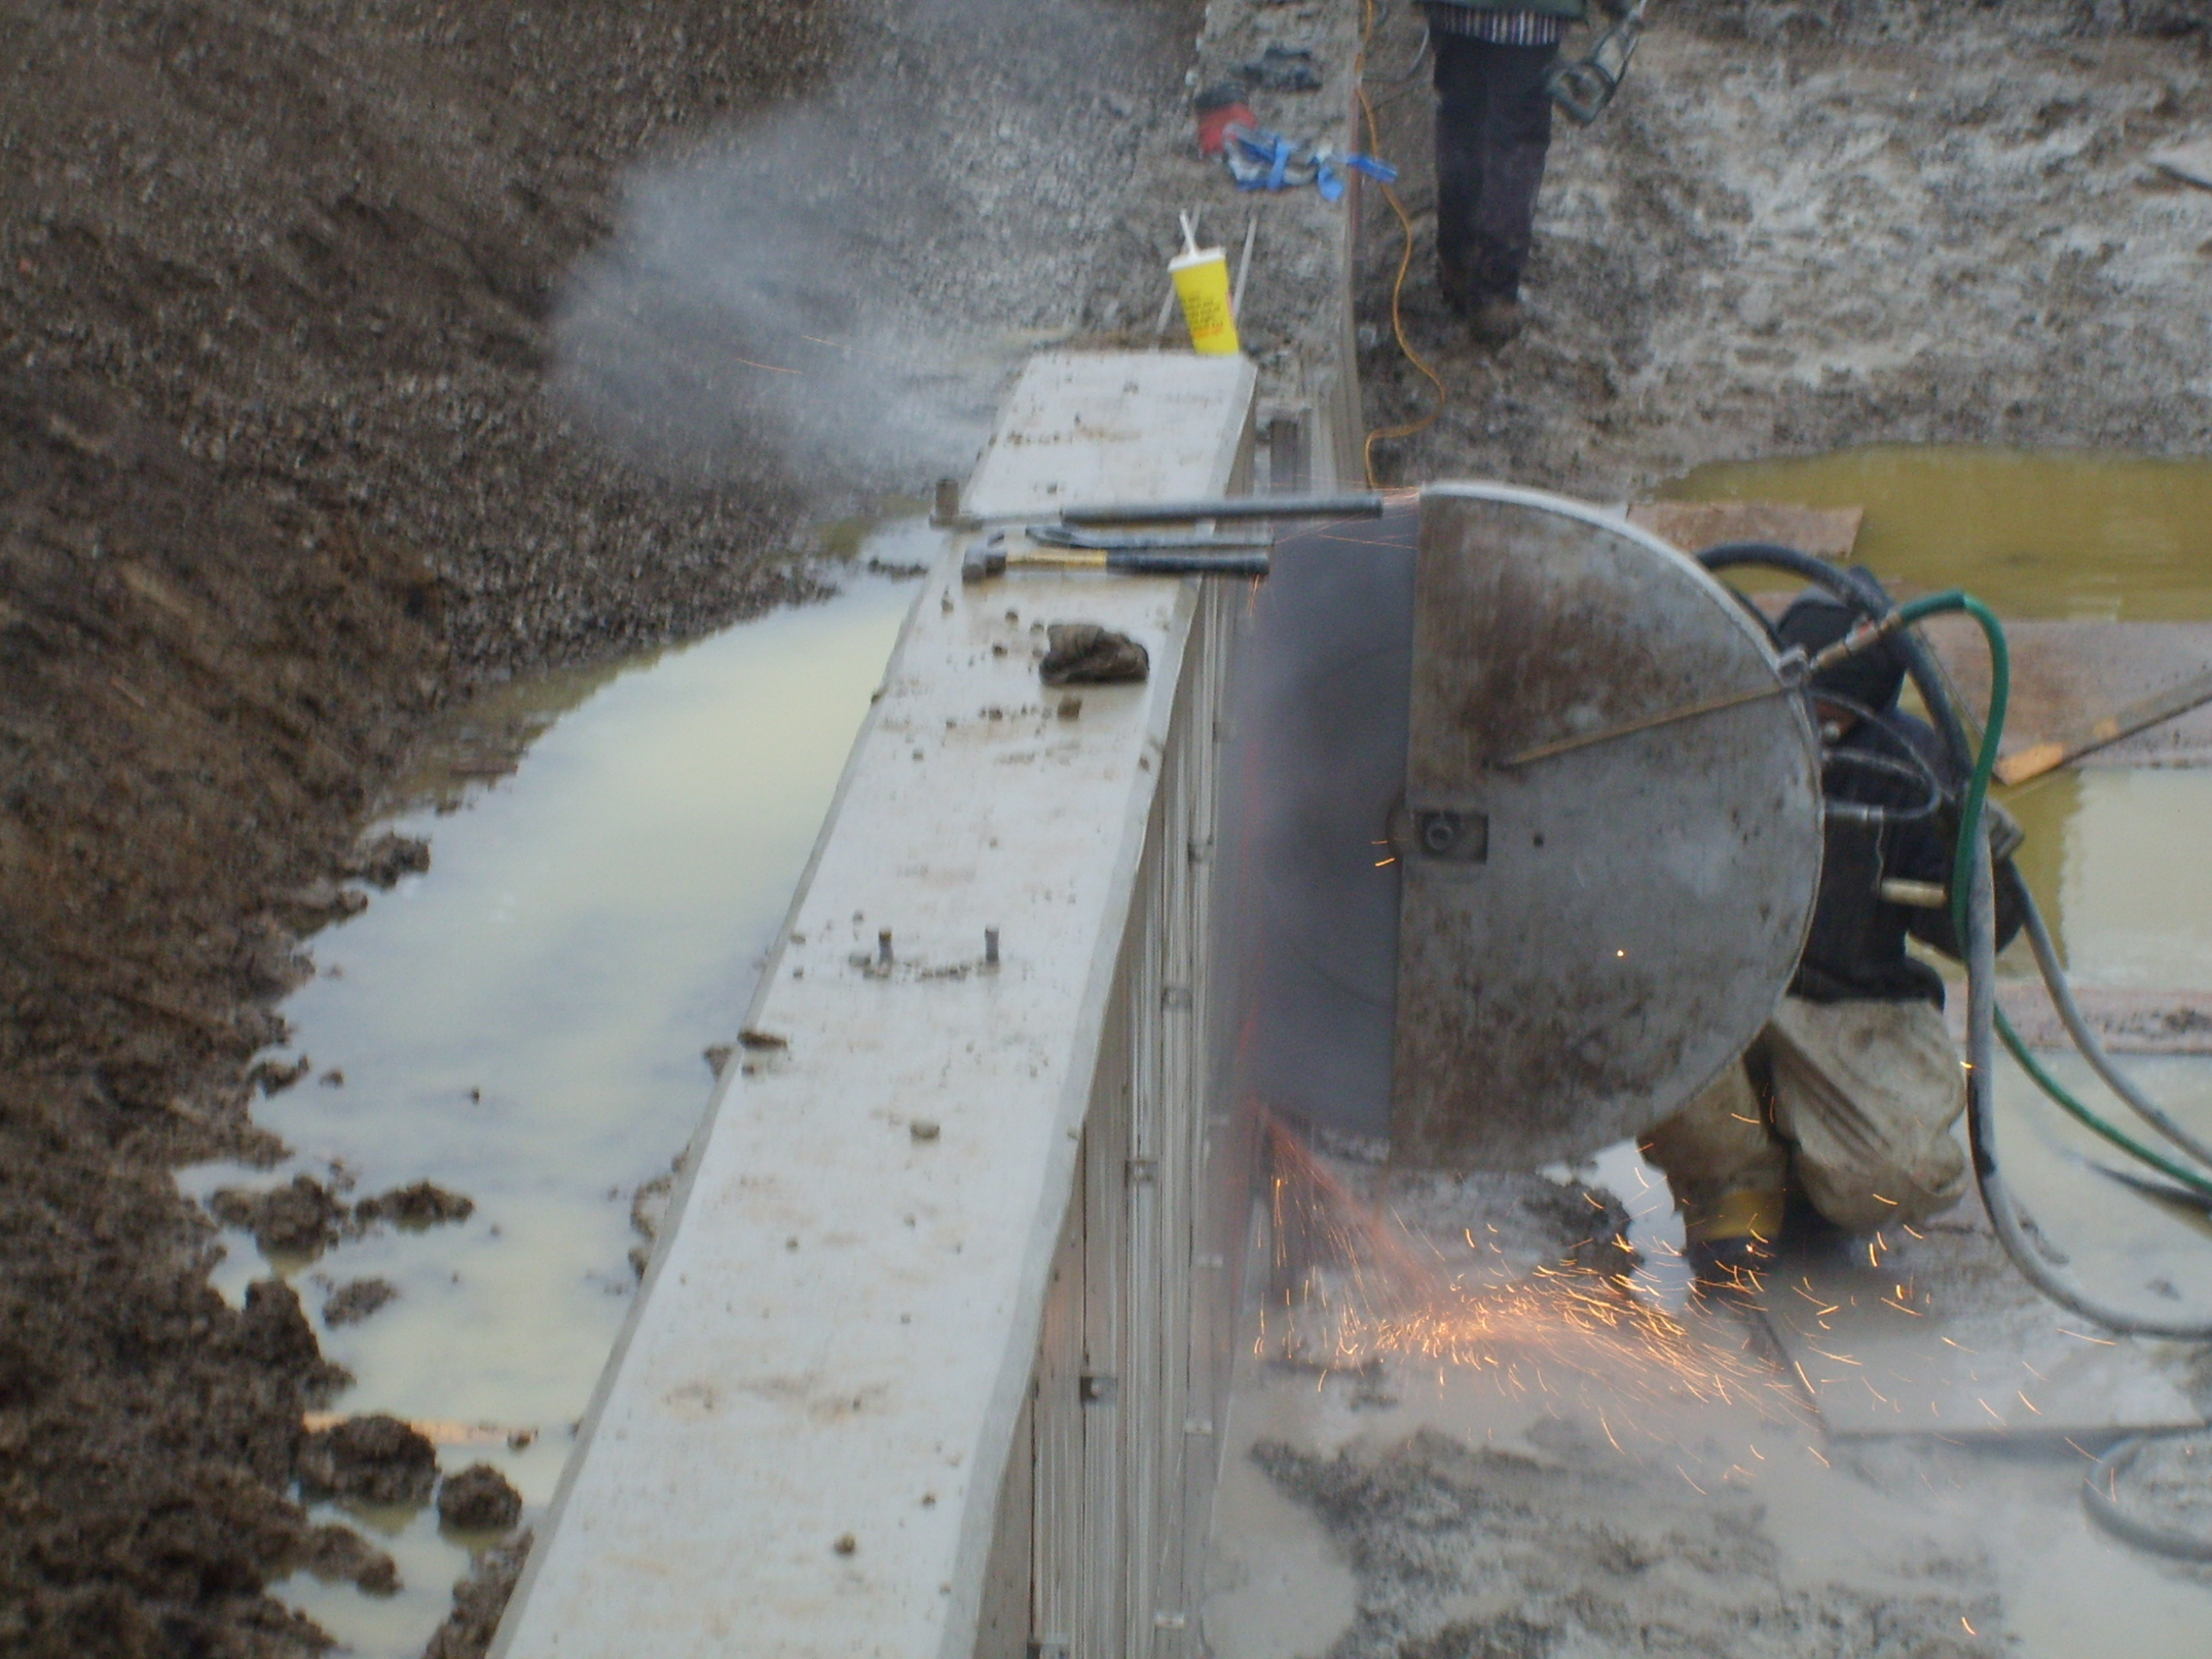 Wall Sawing All Saw Concrete Cutting